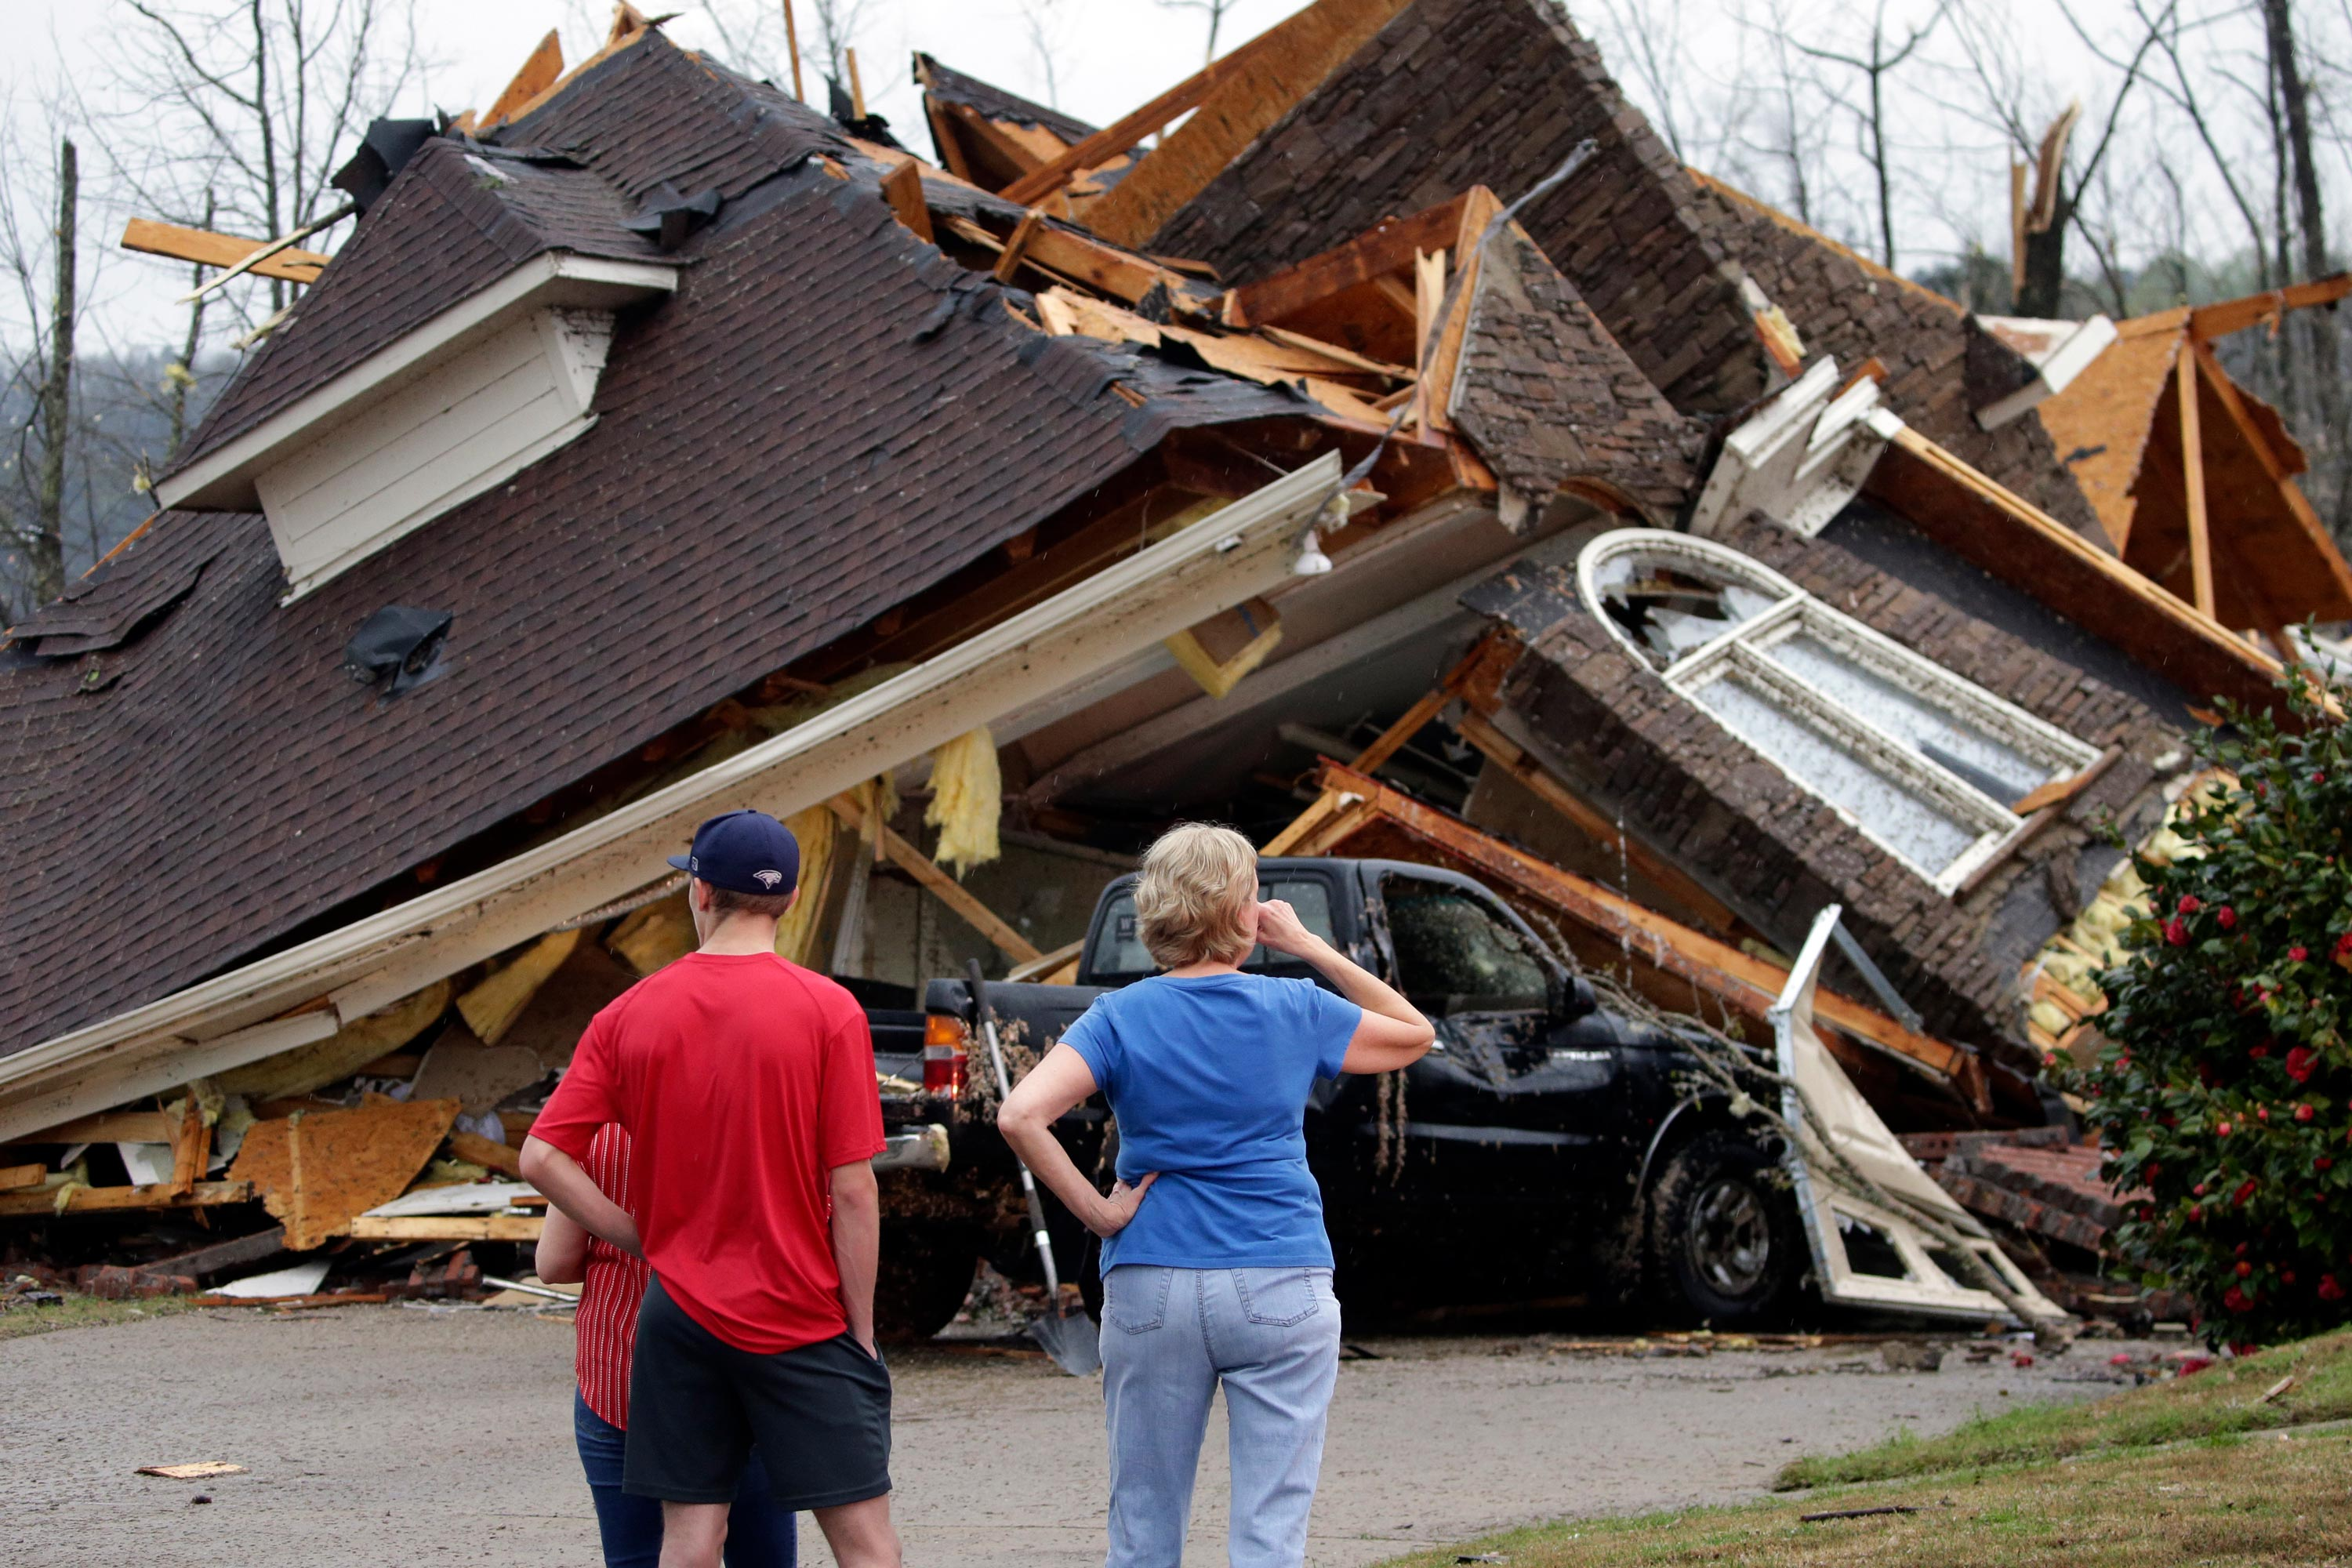 Residents survey damage to homes after a tornado touched down south of Birmingham, Alabama, in the Eagle Point community damaging multiple homes on March 25.